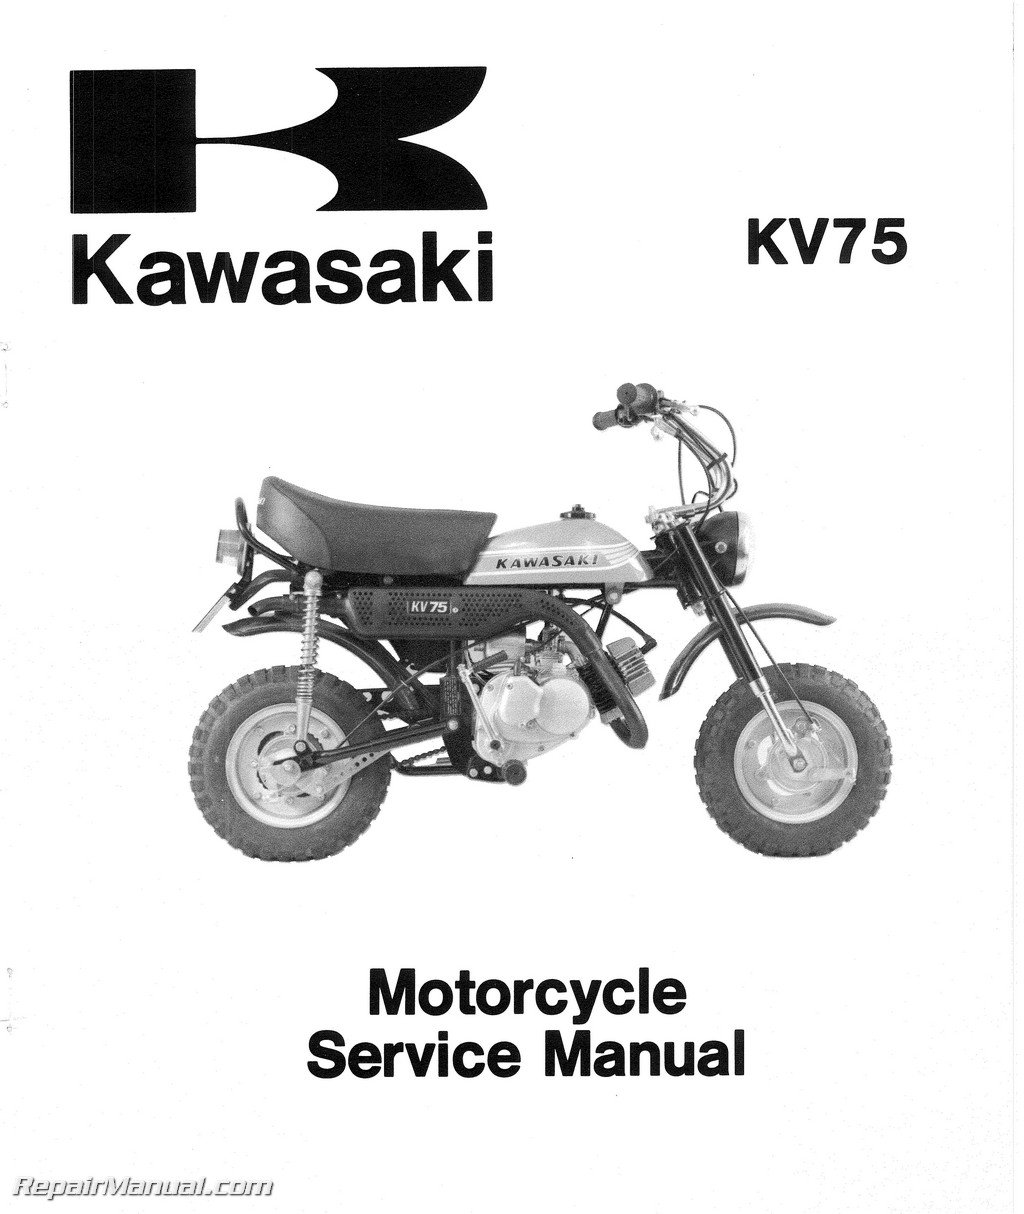 1976 Kawasaki Ke100 Wiring Diagram - Wiring Diagrams Schematics